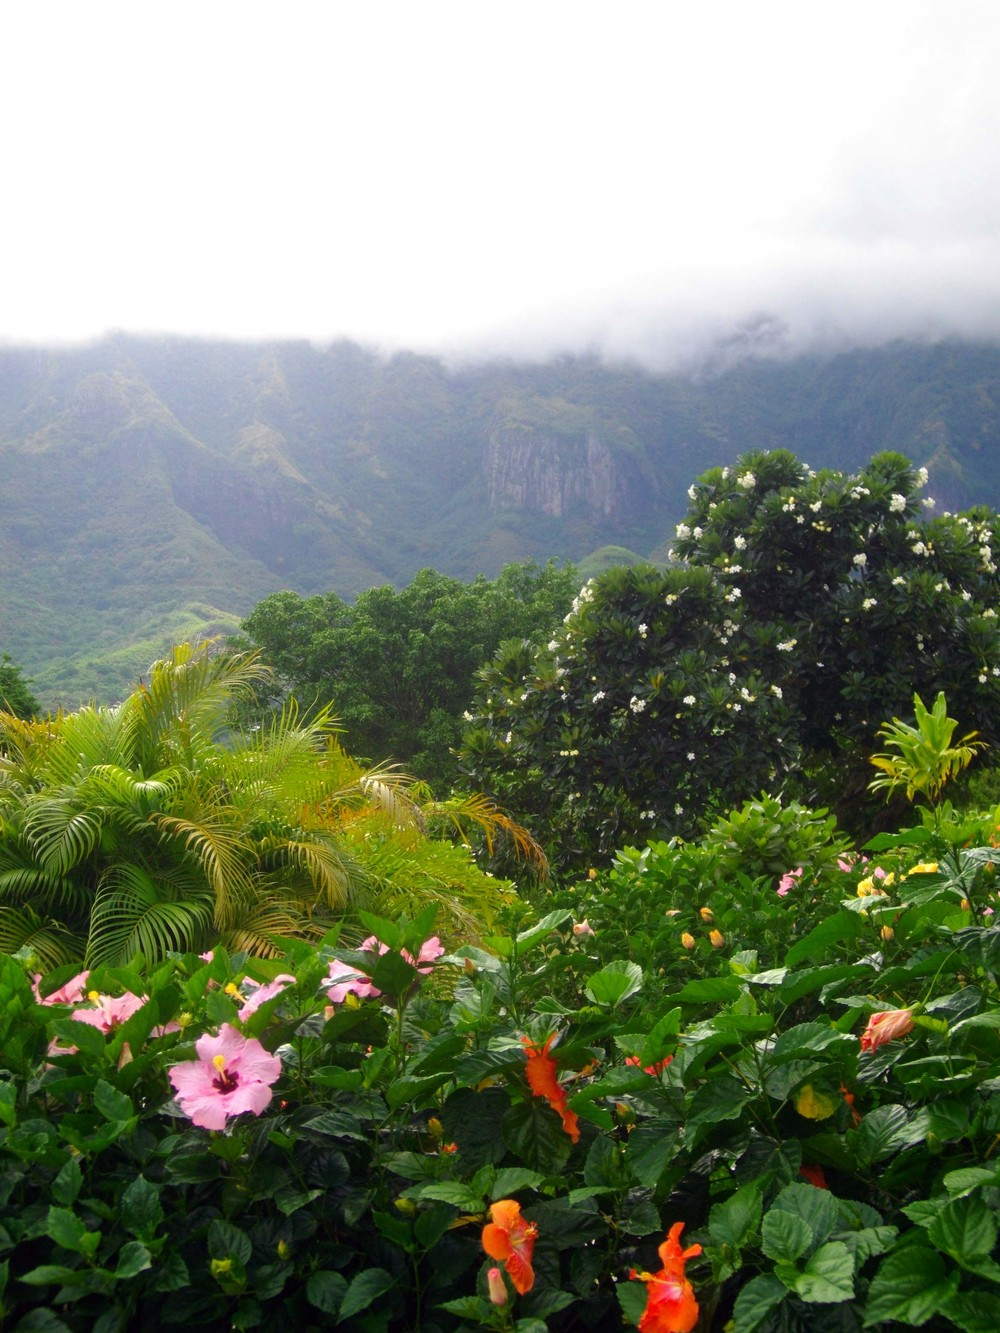 Clouds roll in over the view from the pension garden. The beauty of Nuku Hiva made the trials of the crossing quickly fade.